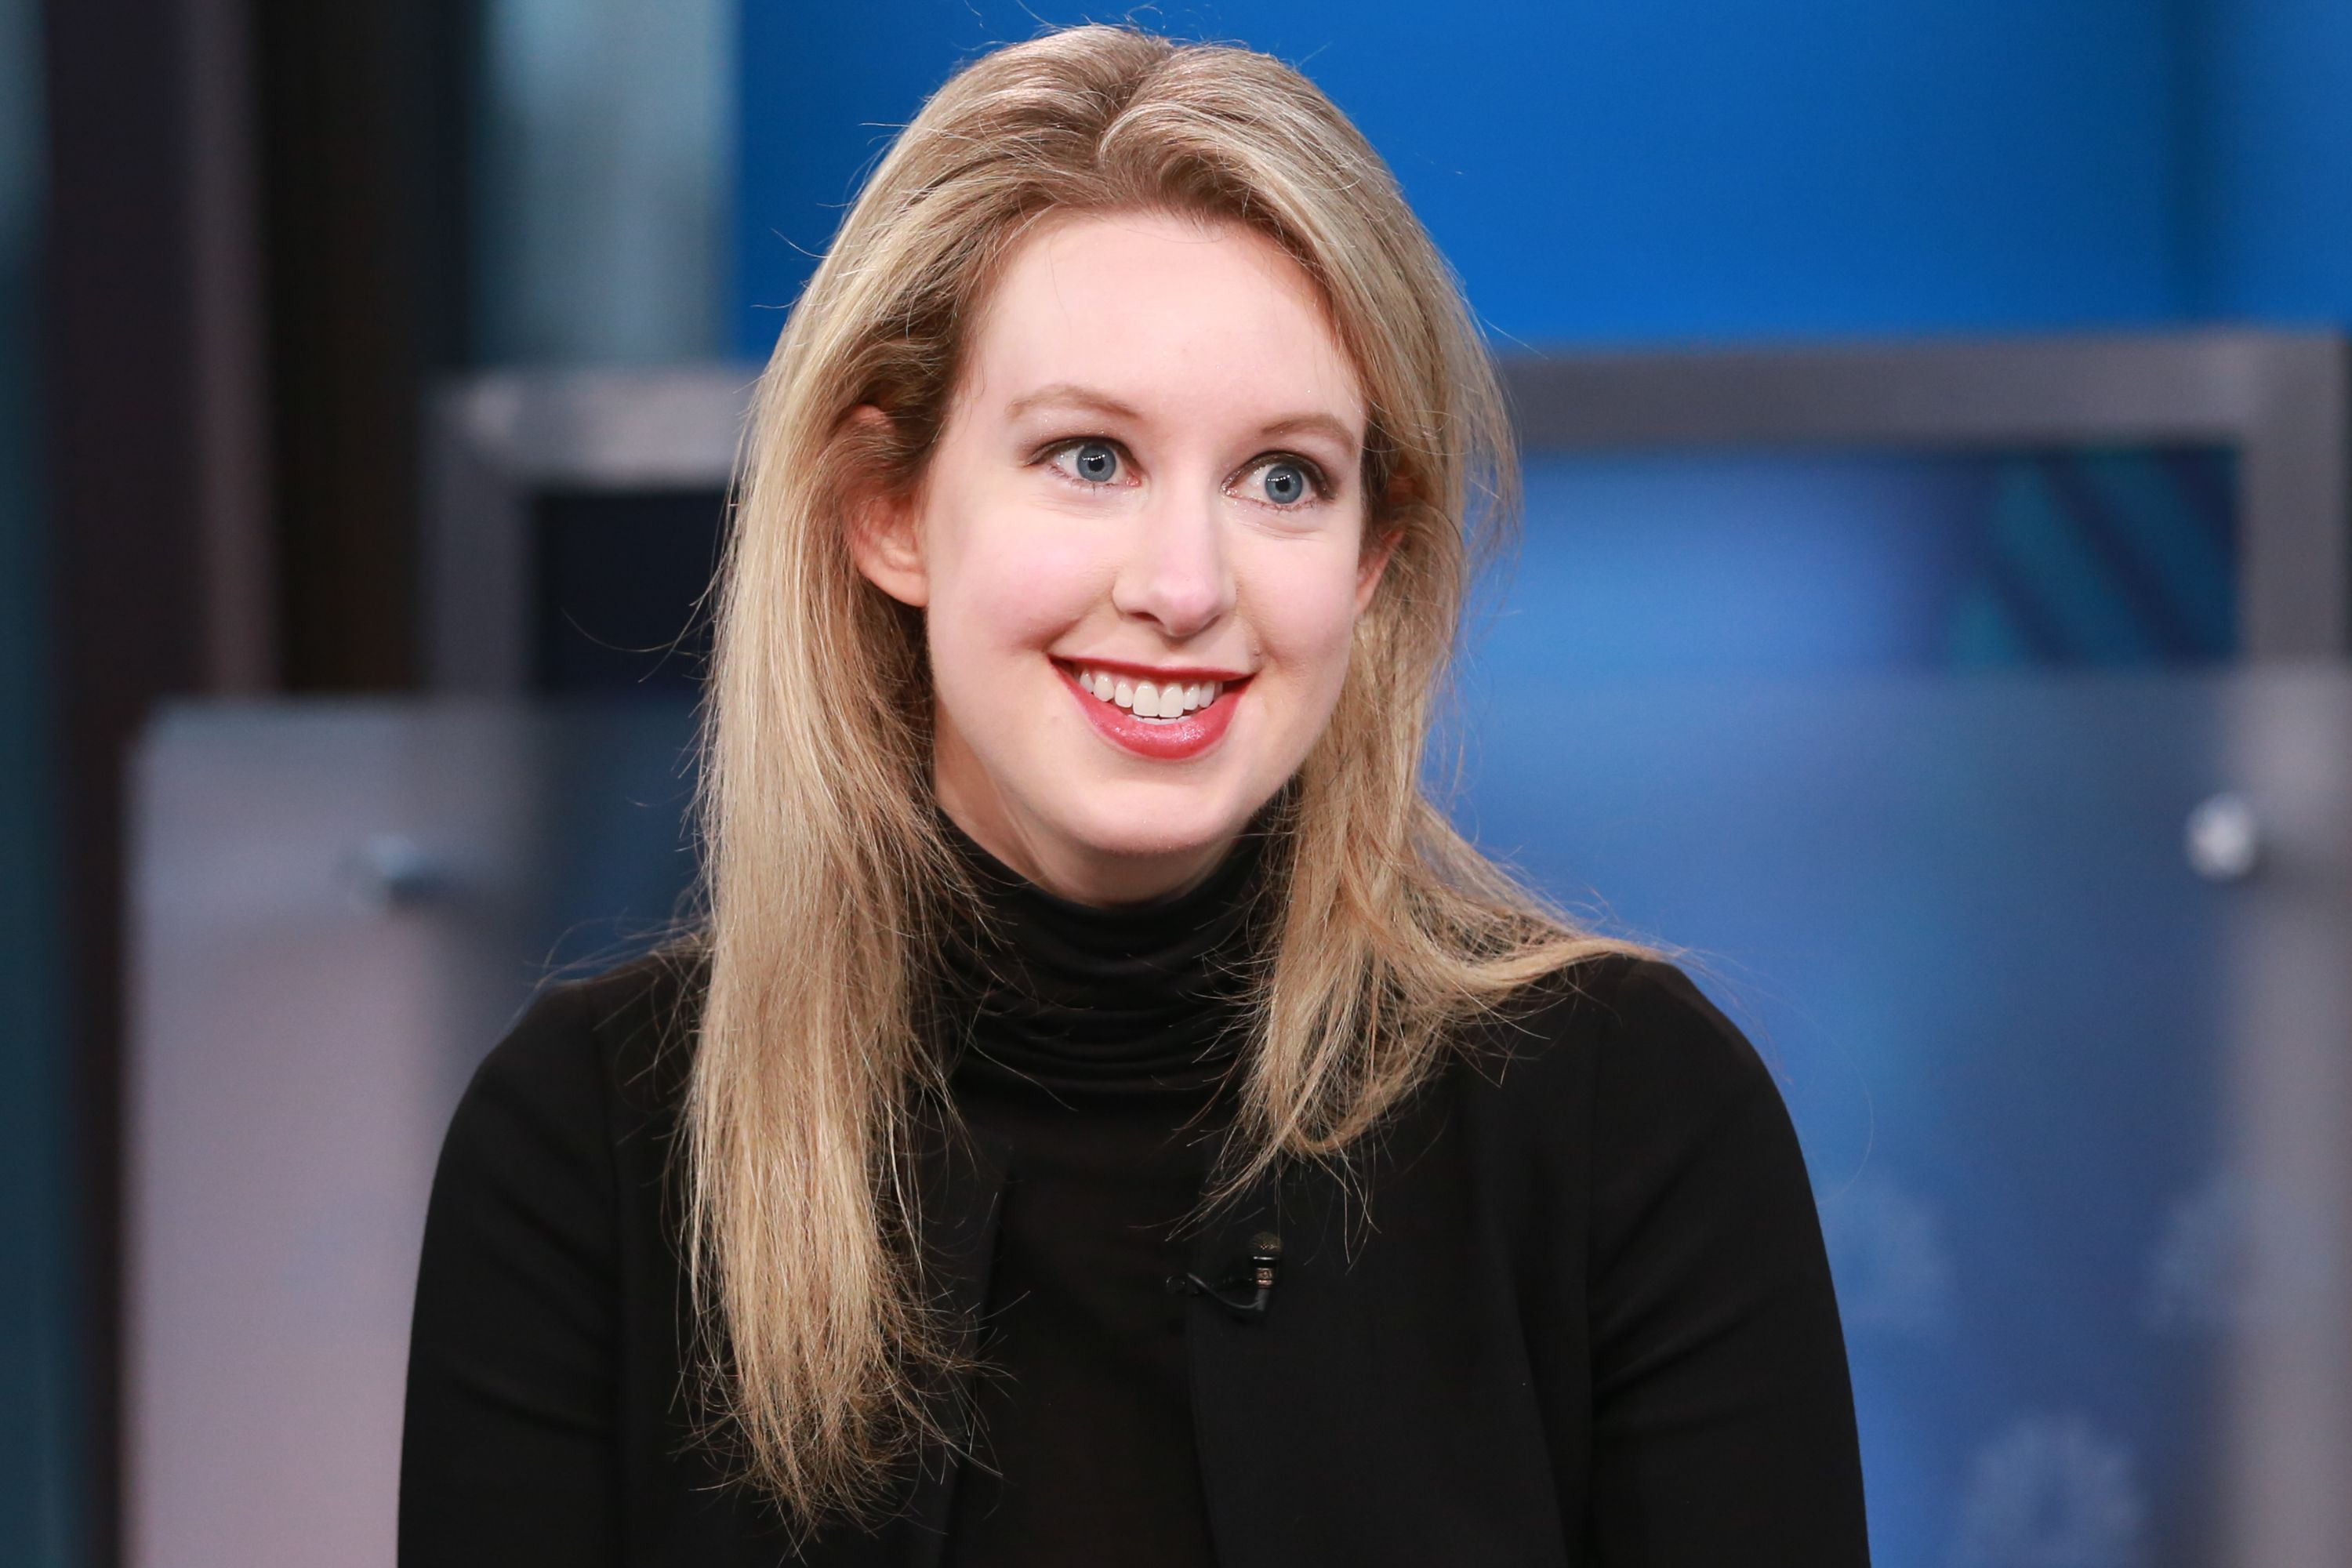 Elizabeth Holmes Today - News About the Theranos Founder's